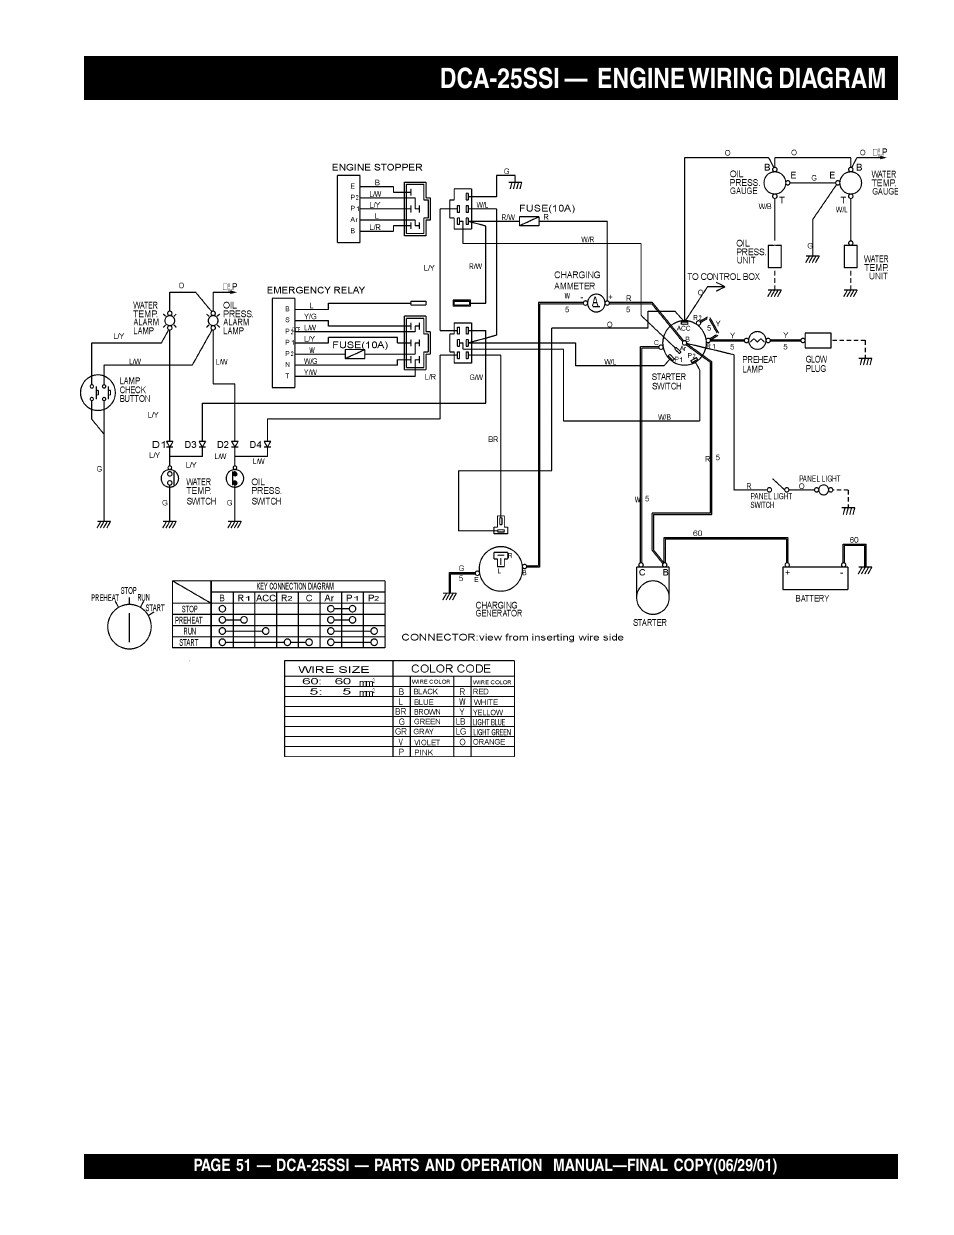 medium resolution of dca 25ssi engine wiring diagram multiquip mq power whisperwatt generator dca 25ssi user manual page 51 140